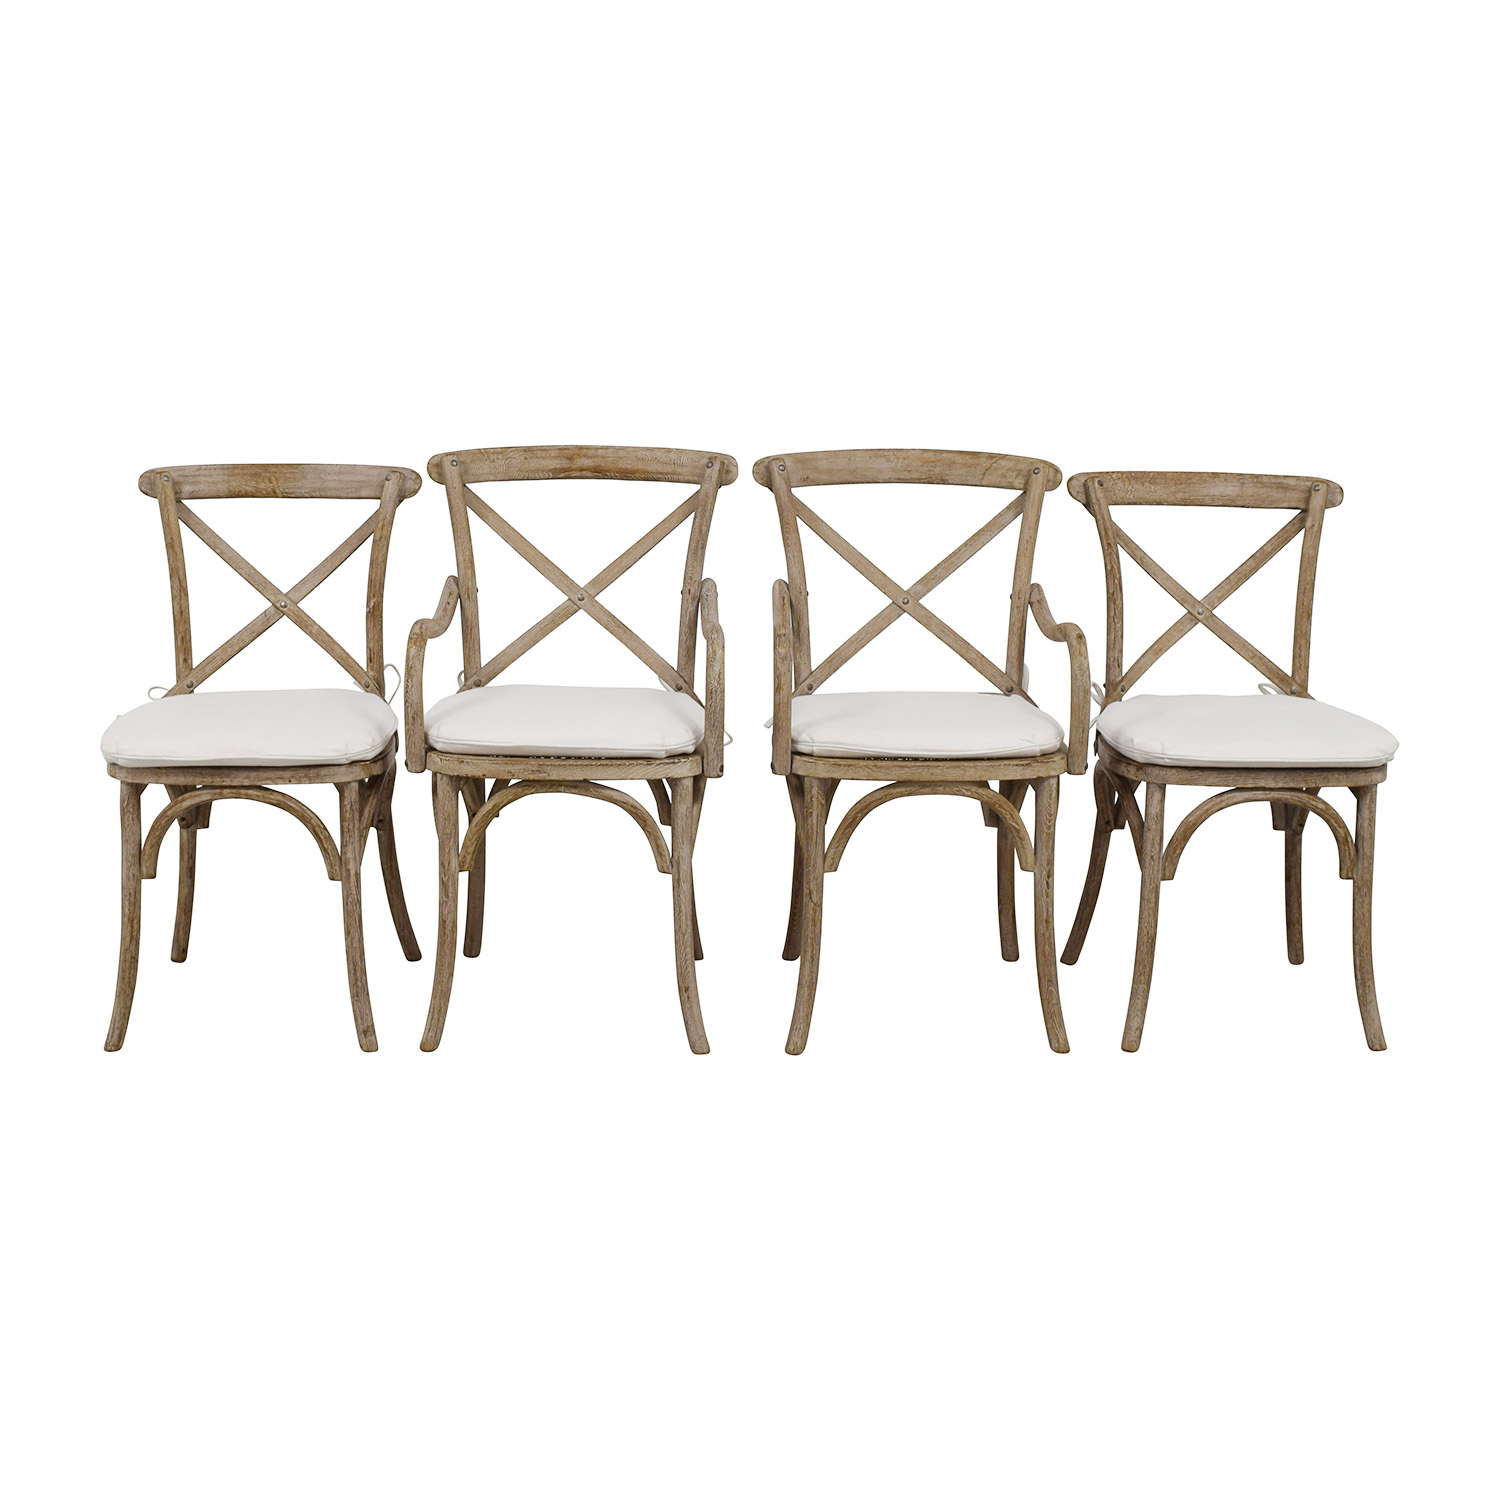 Restoration Hardware Madeleine Natural Wood Chairs Restoration Hardware